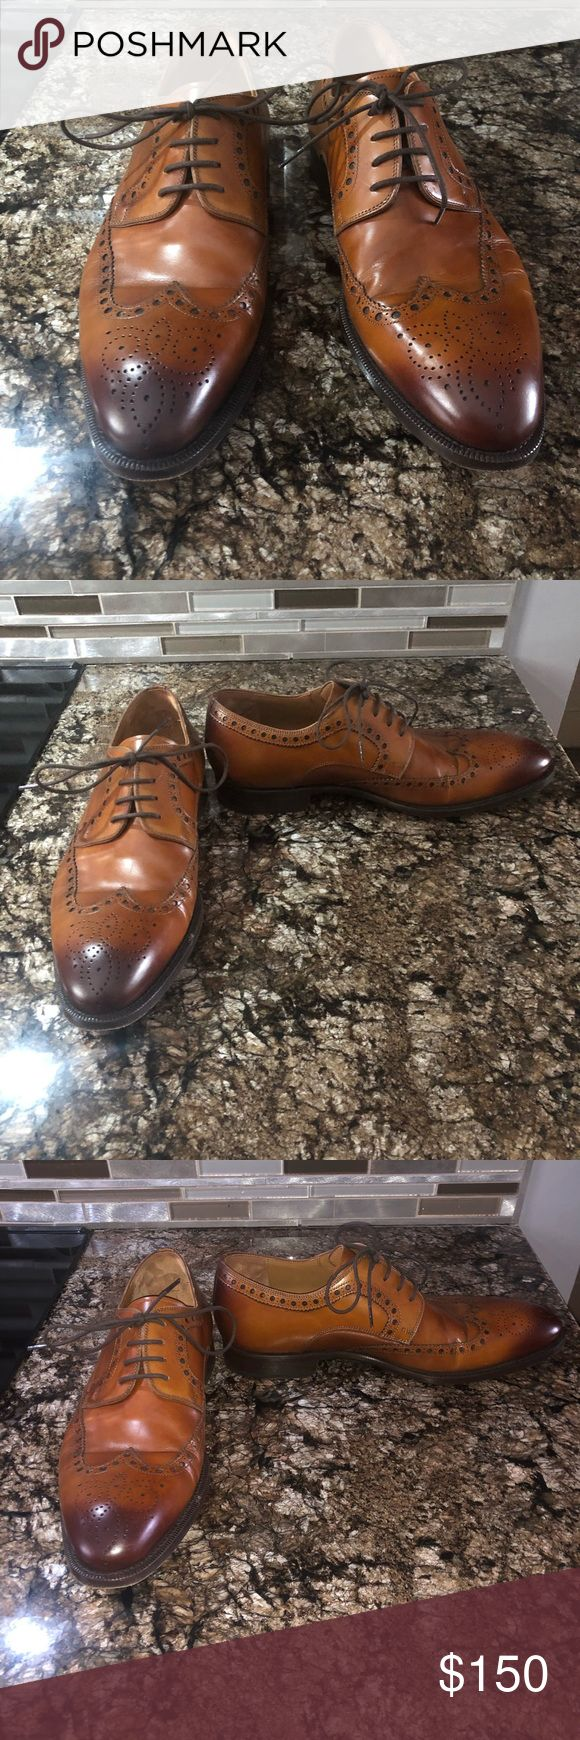 Magnanni Men's Dress Shoes Gently Used Men's Magnanni Dress Shoes In excelle...